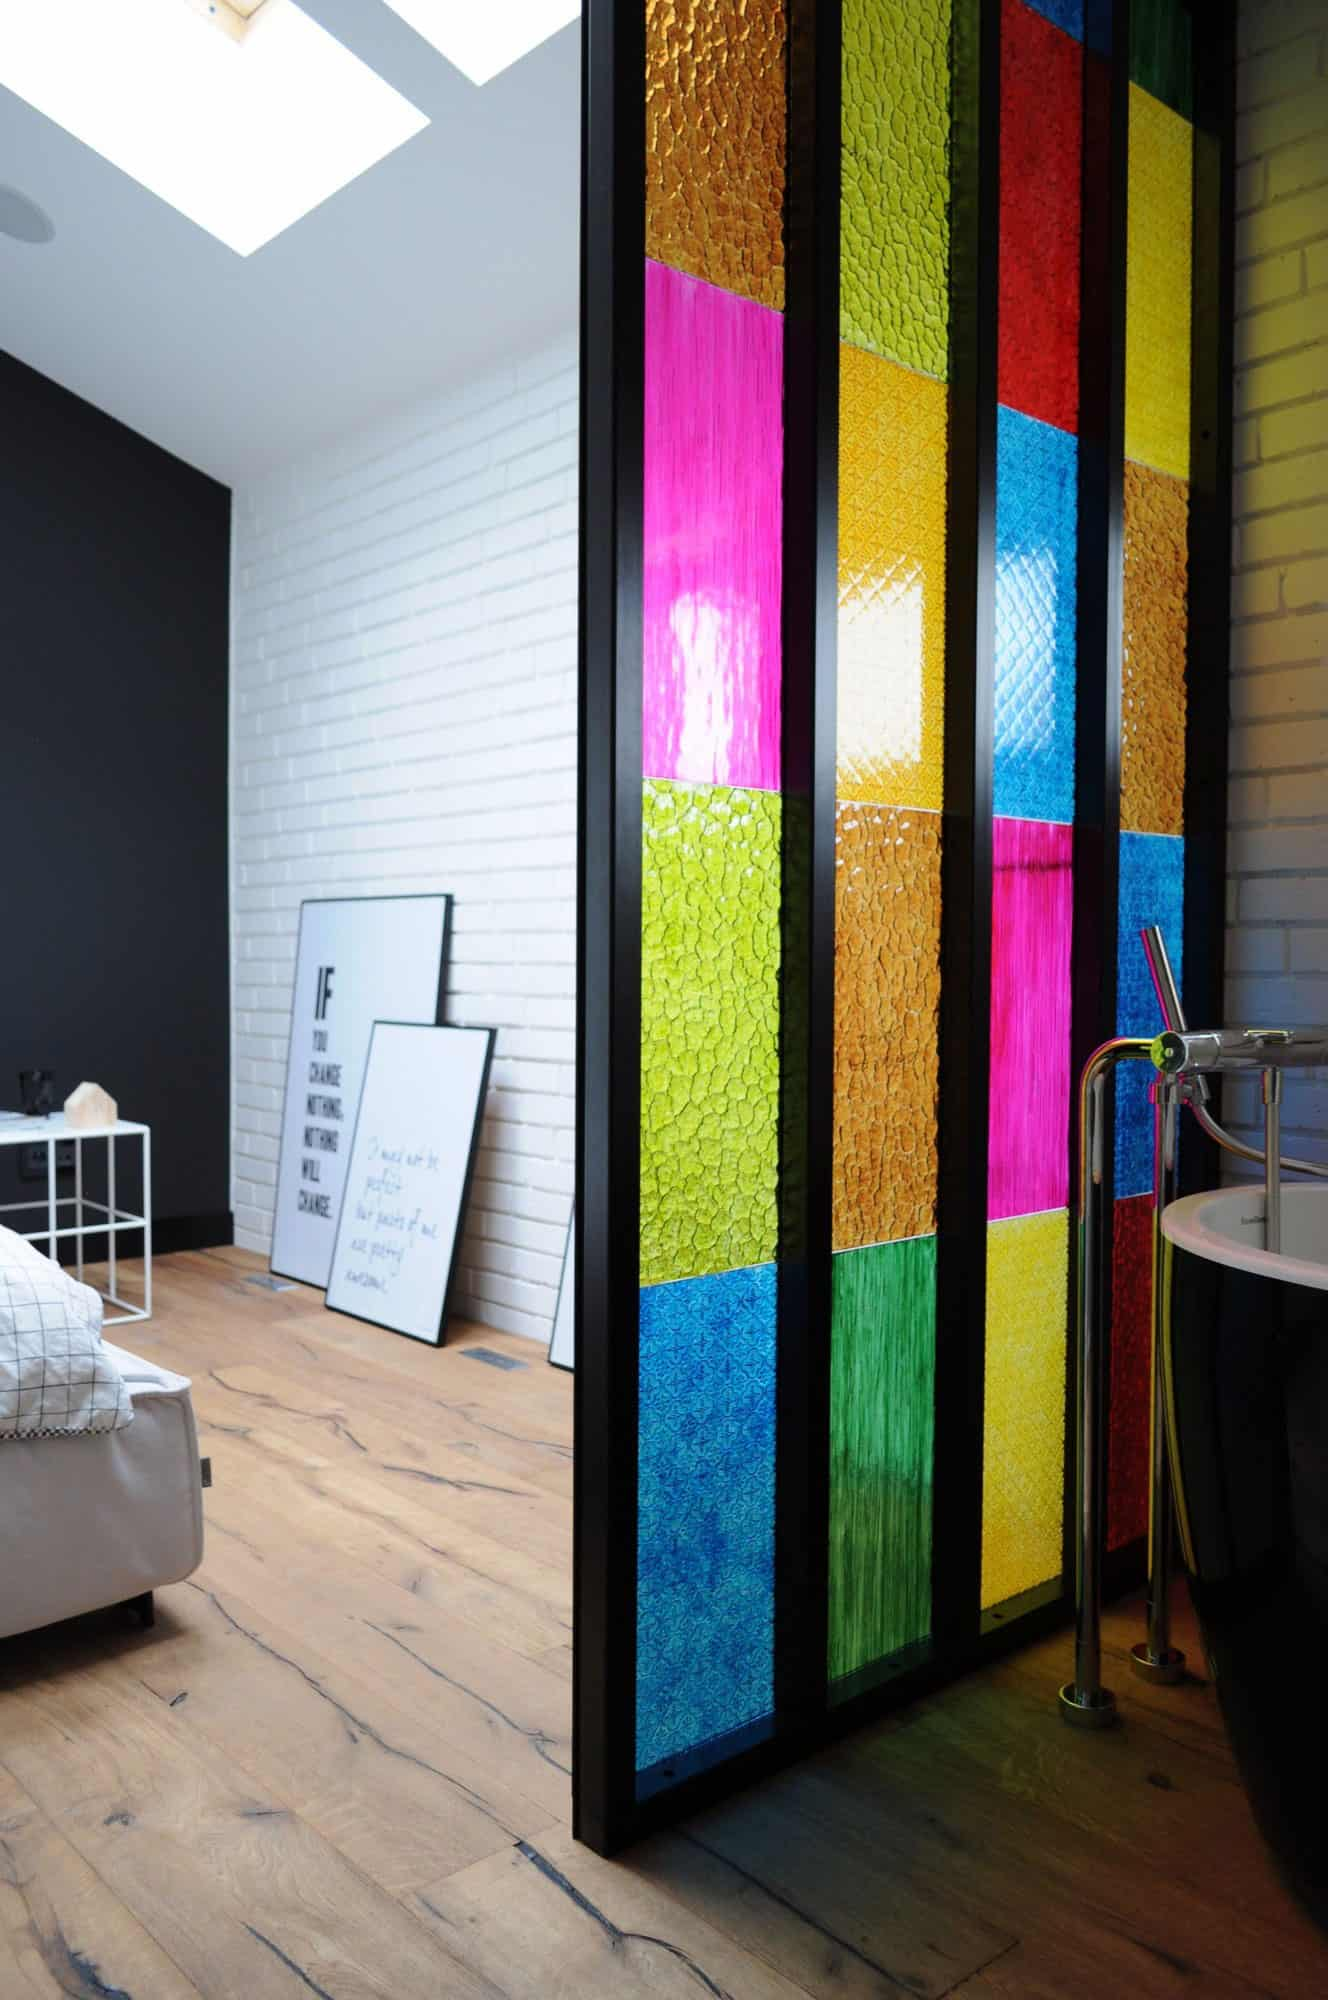 Bedroom Bathroom Partition In Colored Plastic Panels DIY Idea - Bathroom partition design